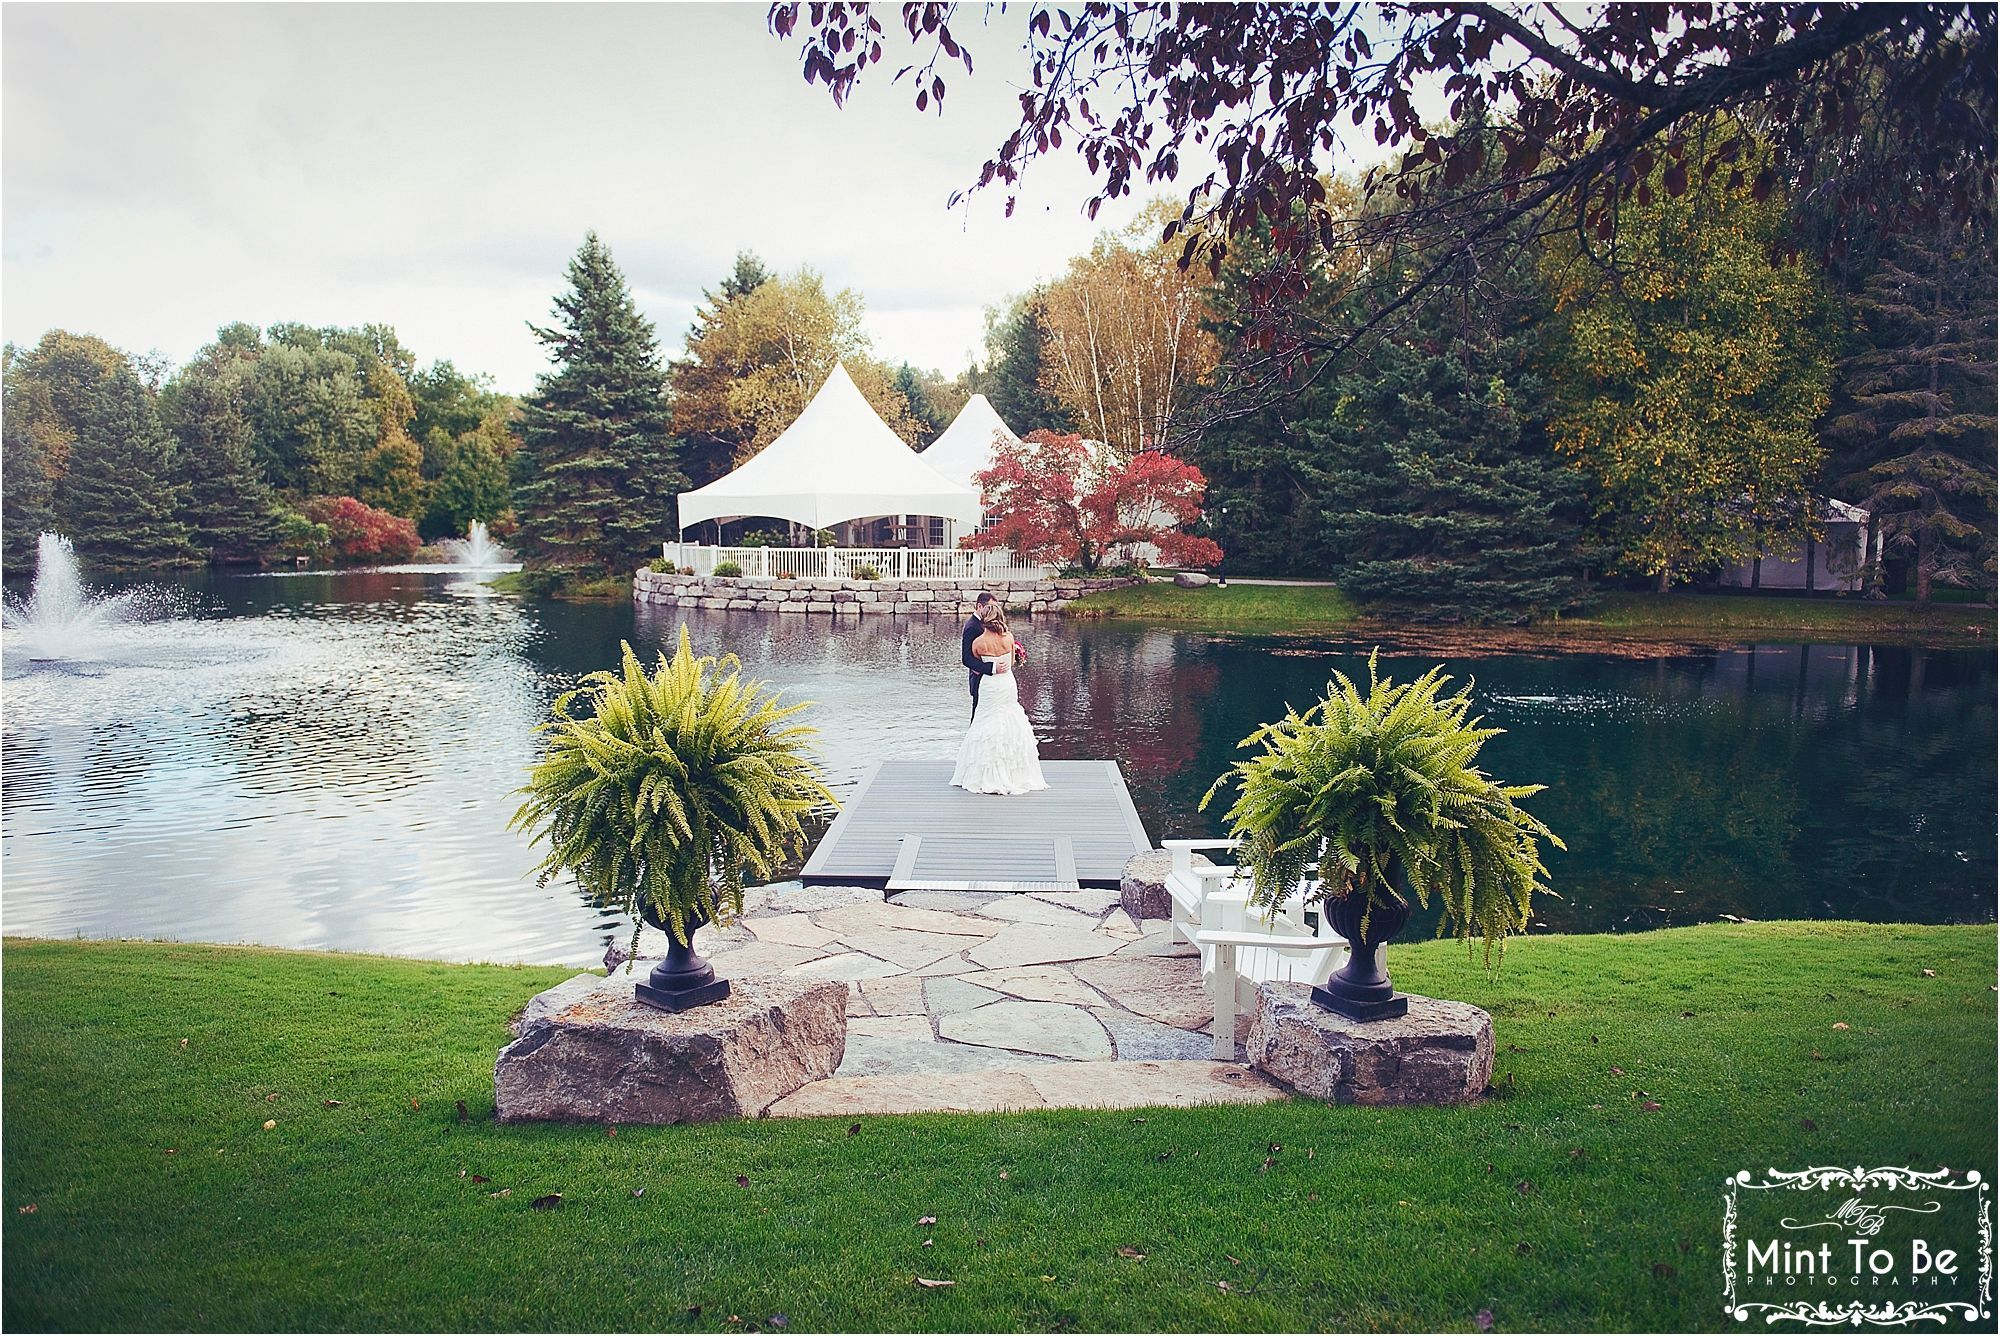 Nestleton Waters Inn Outdoor wedding venues, Wedding